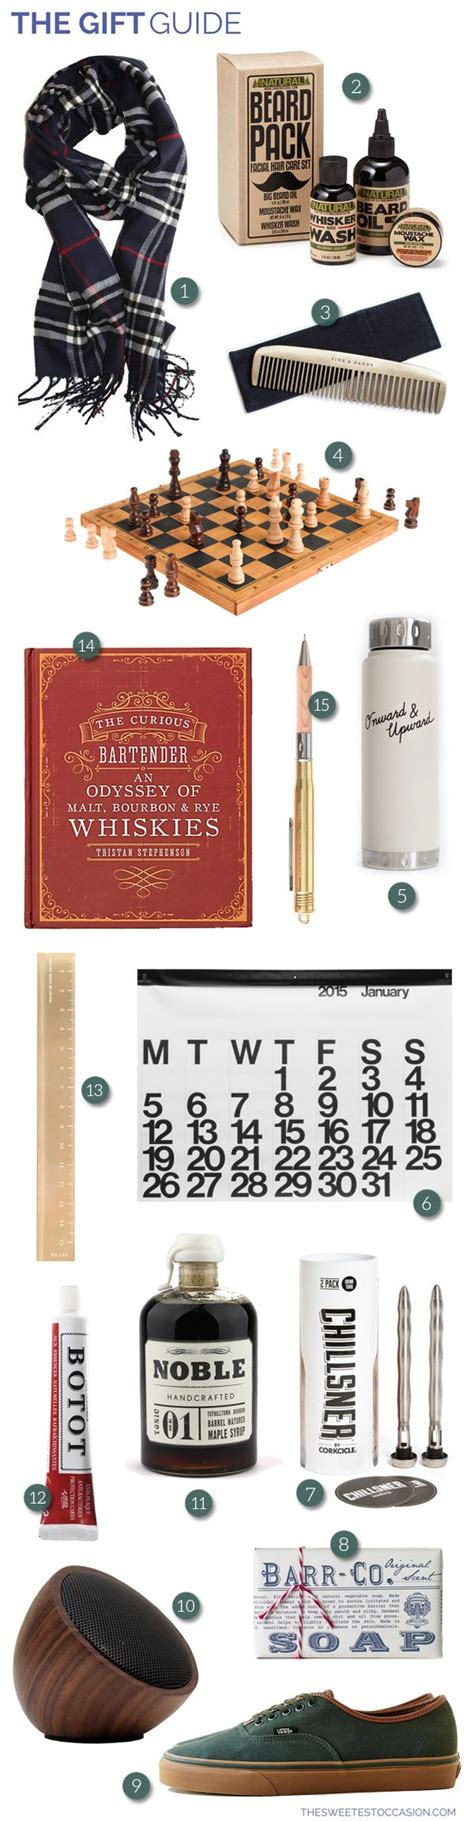 Fab Gift Guide All The Dudes by The Gift Guide Gifts For Guys The Sweetest Occasion